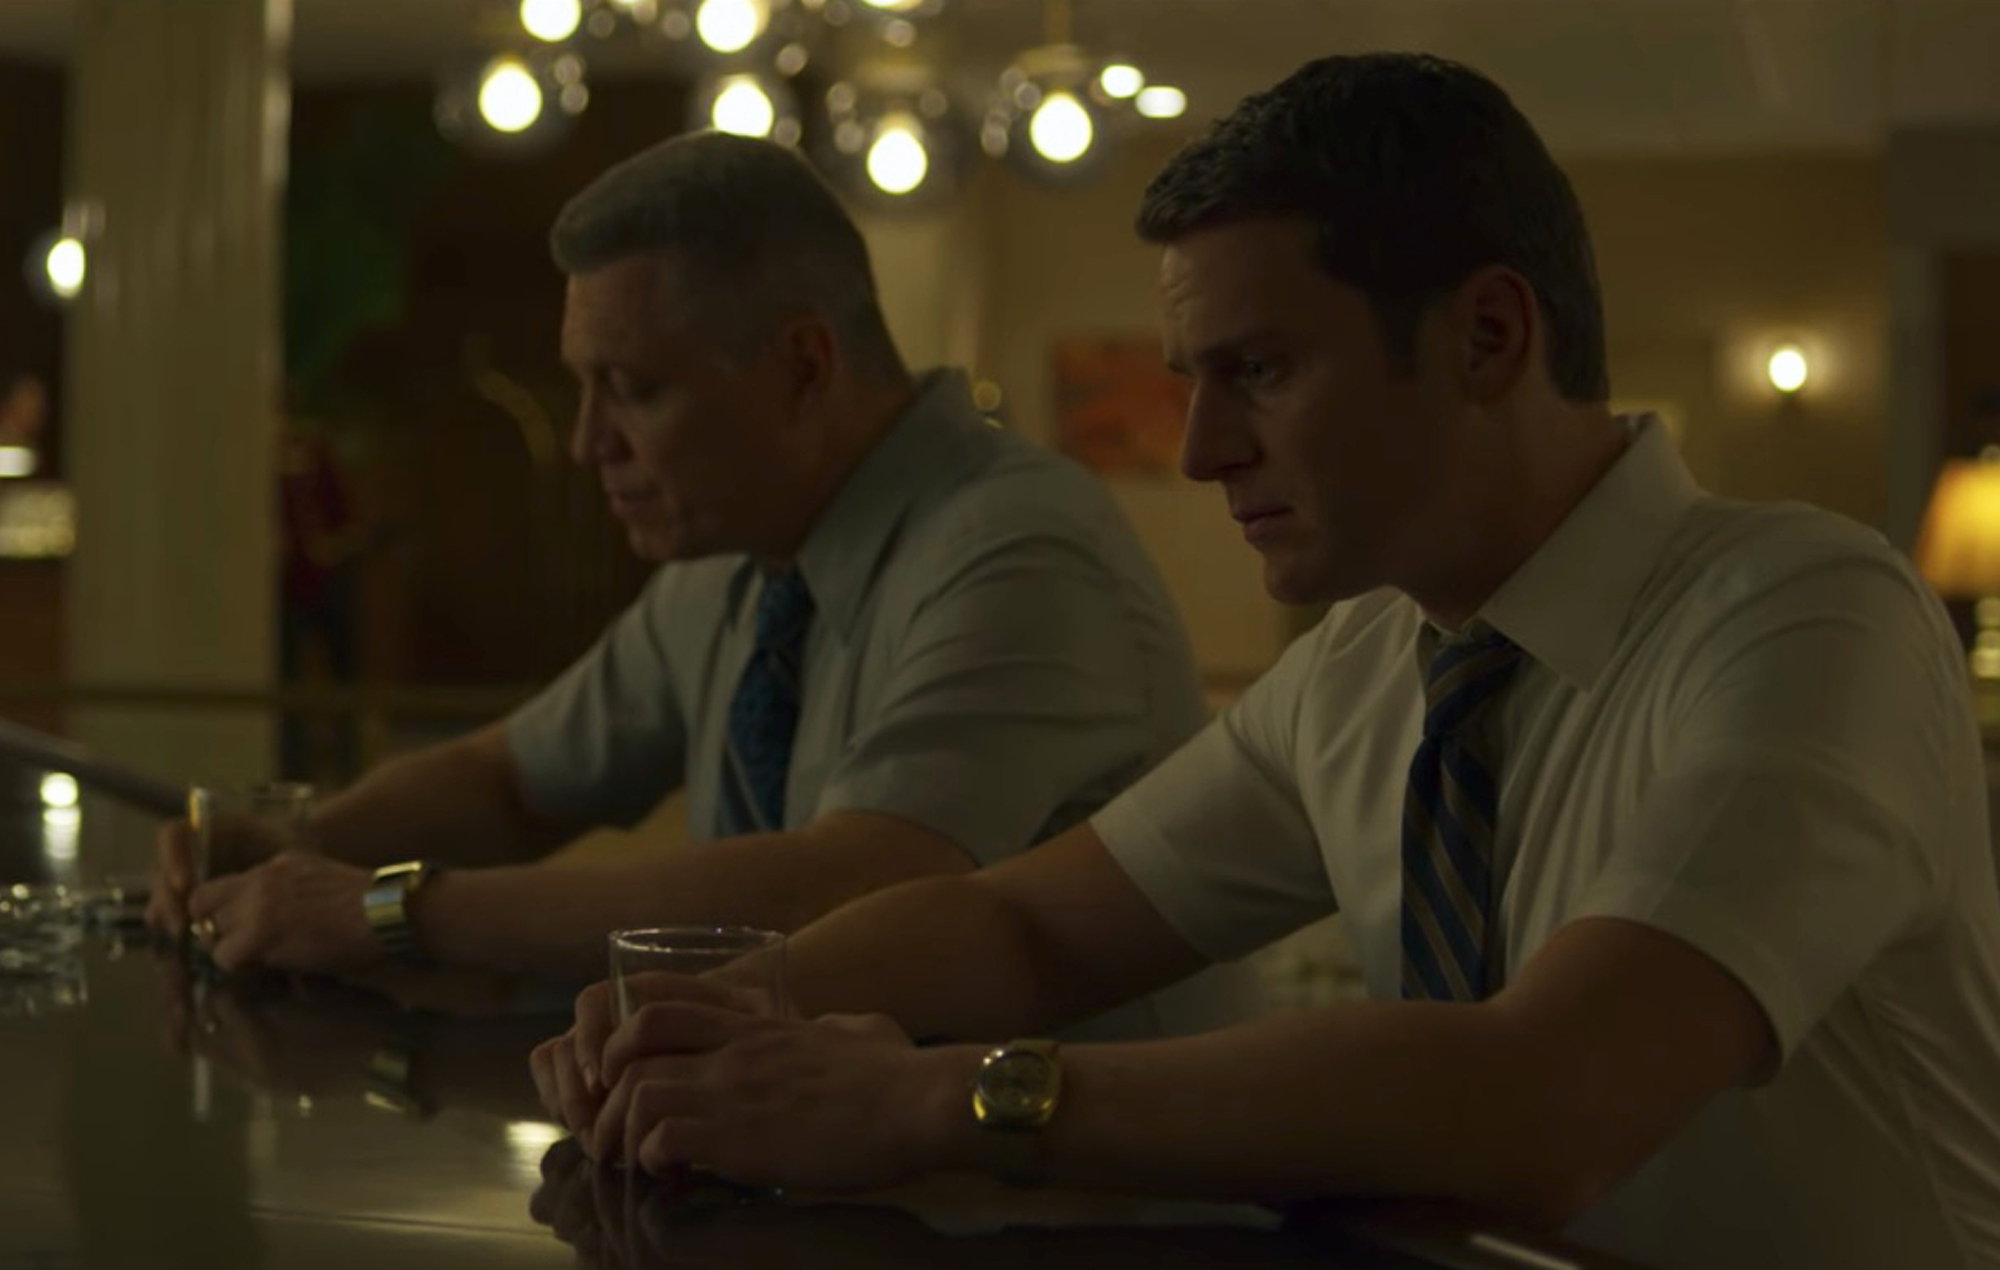 'Mindhunter' Season 3 won't be out until David Fincher finishes his next film